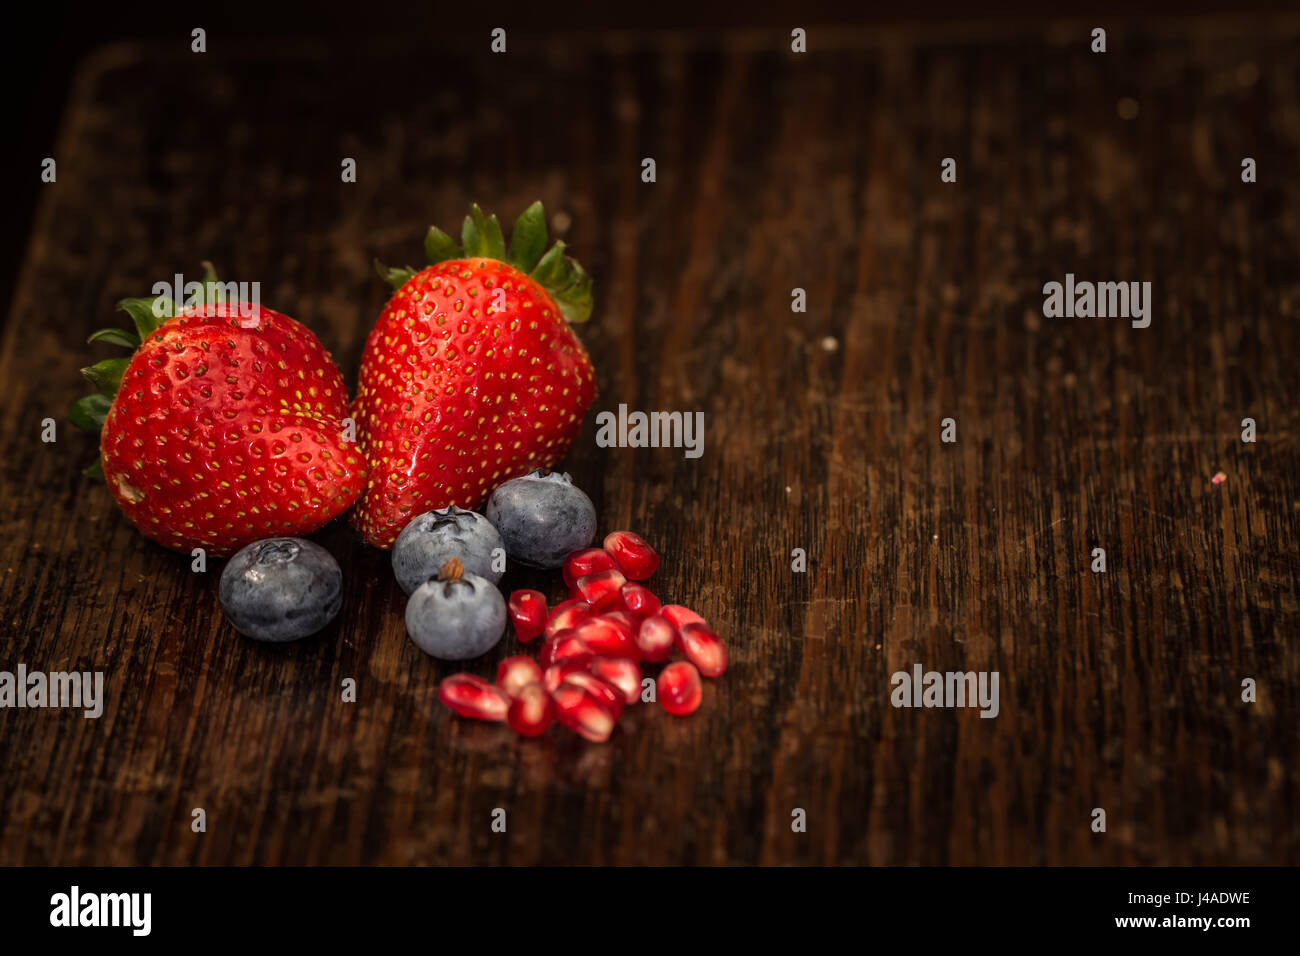 freshly farm picked strawberries blue berries closeup with pomegranate seeds with copy space - Stock Image